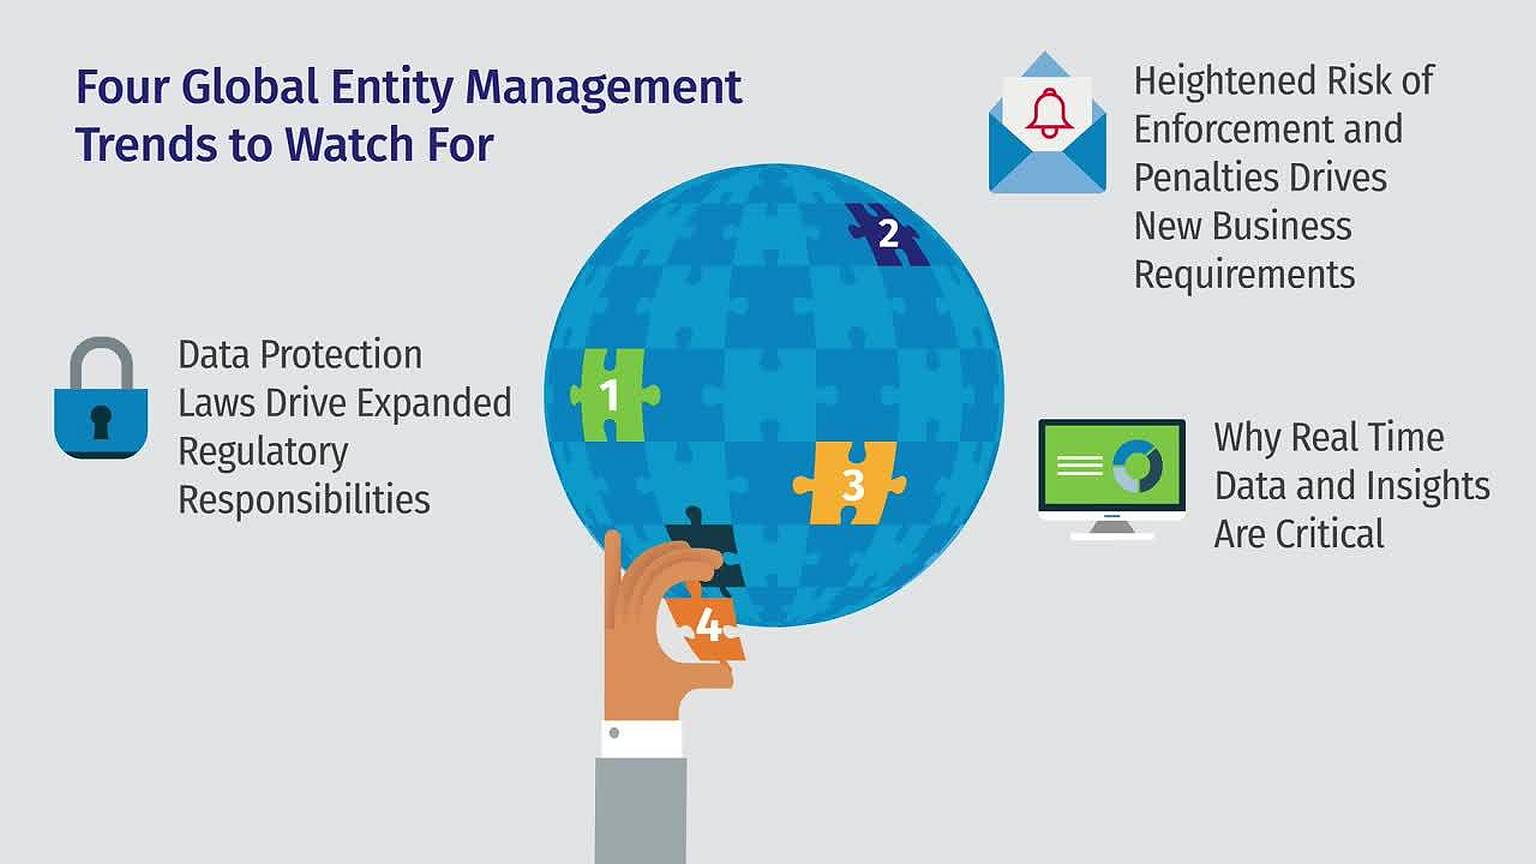 Global entity management trends